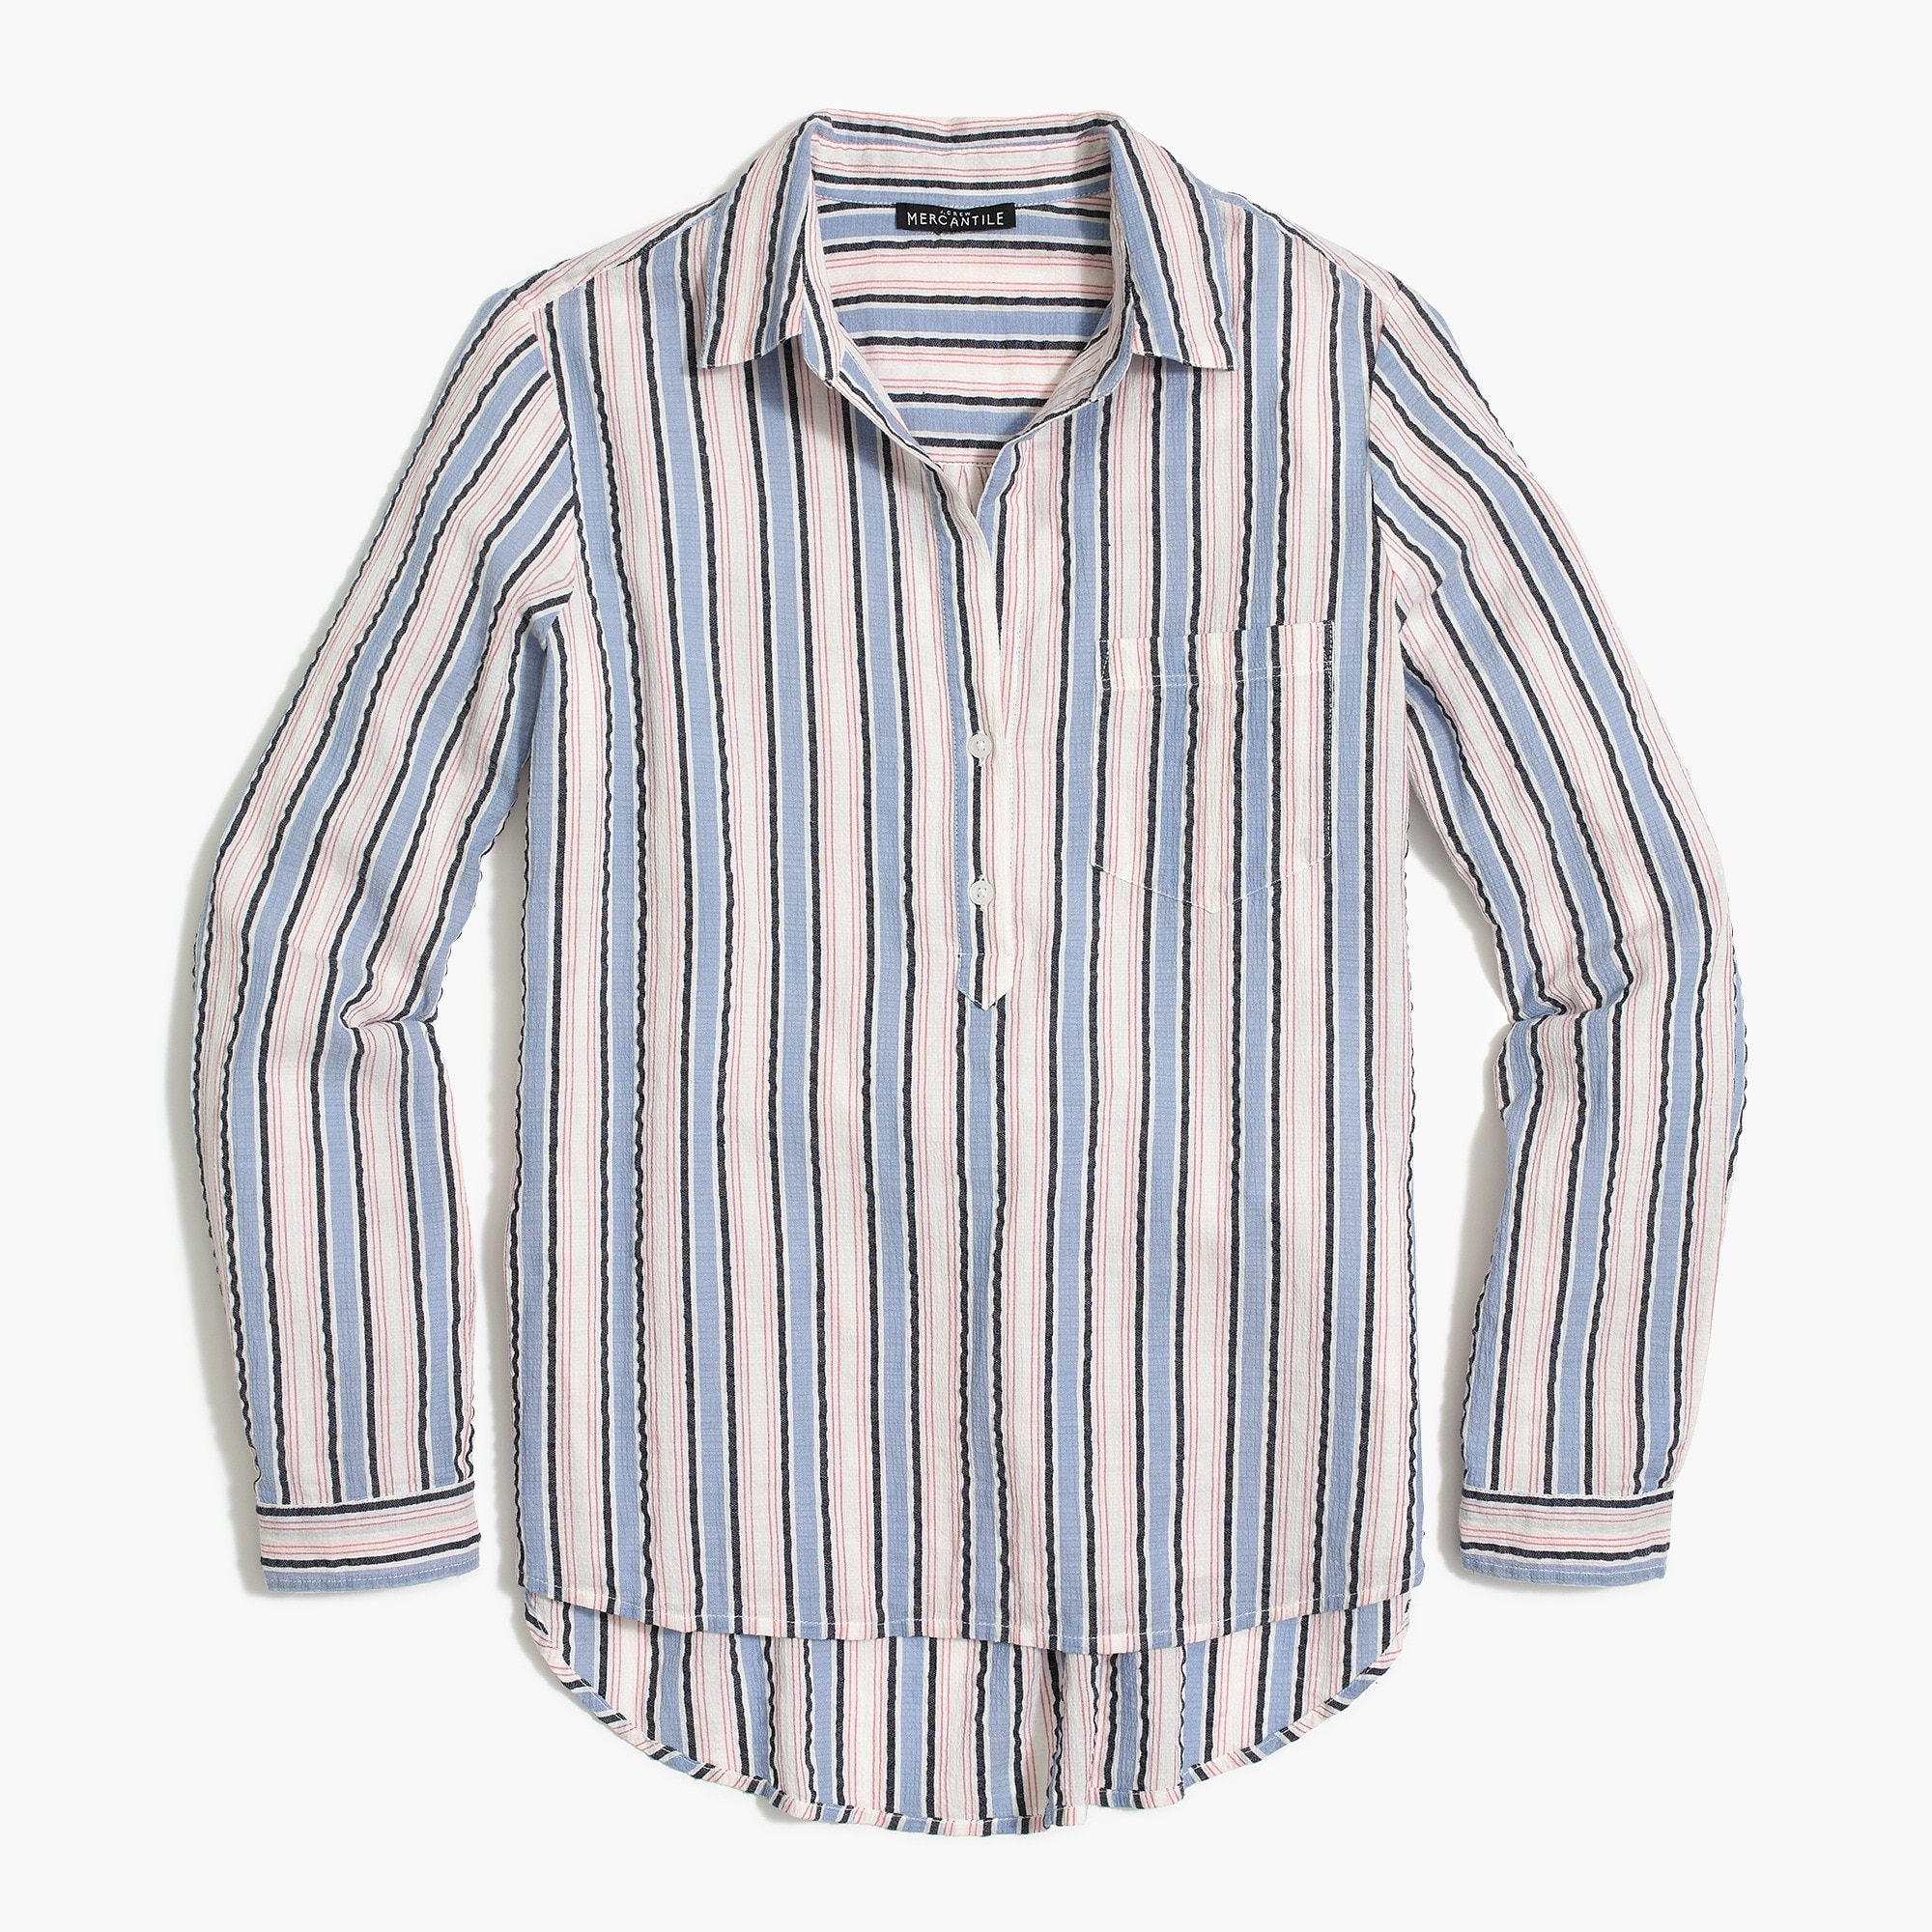 Pullover button-up shirt